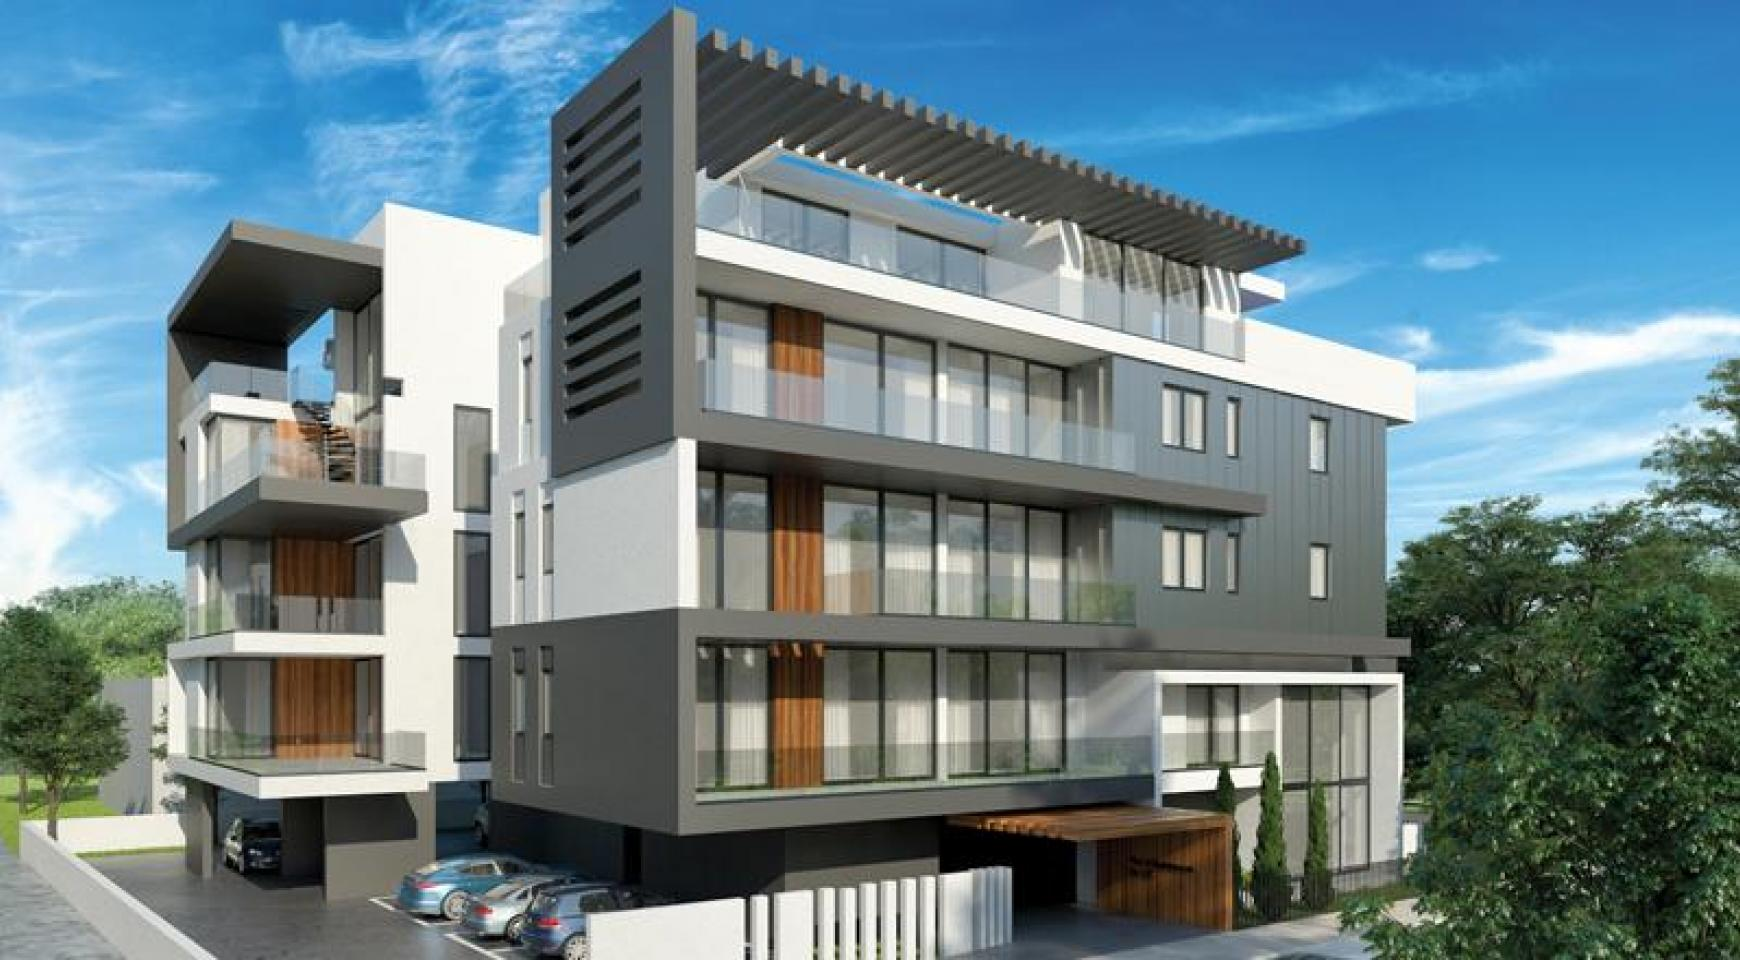 New 3 Bedroom Apartment in a Modern Development near the Sea - 1